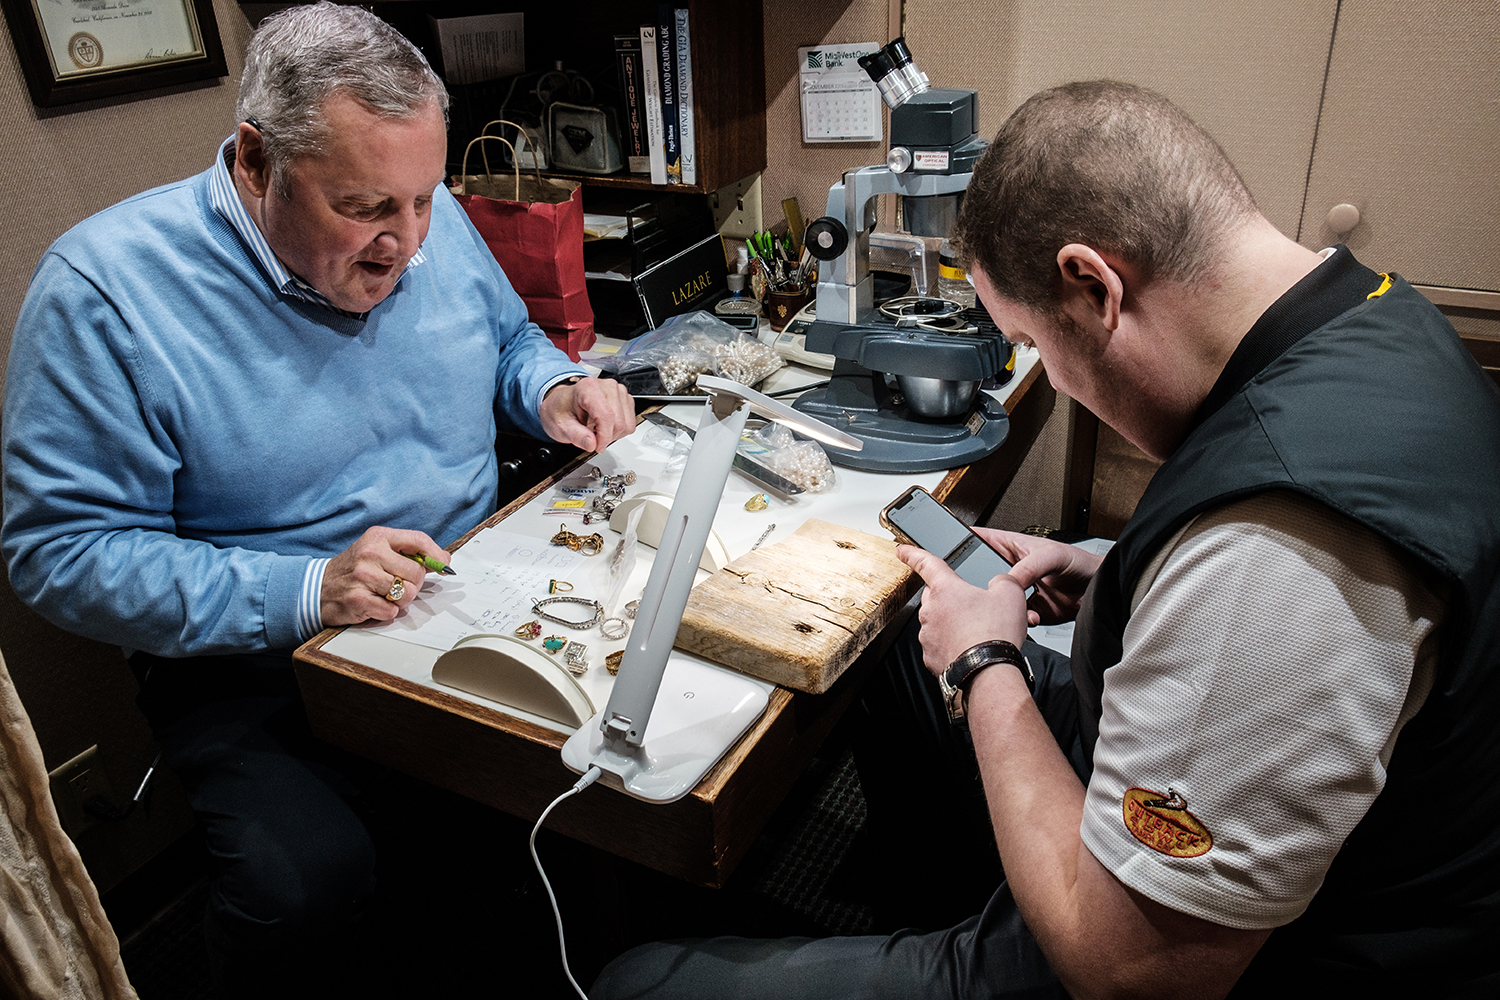 Bill Nusser Jr. and Charlie Nusser test the quality of a jewelery collection at Hands Jewlers in Iowa City on November 15, 2019. Hands Jewlers has been family-owned and located in Iowa City since 1895.